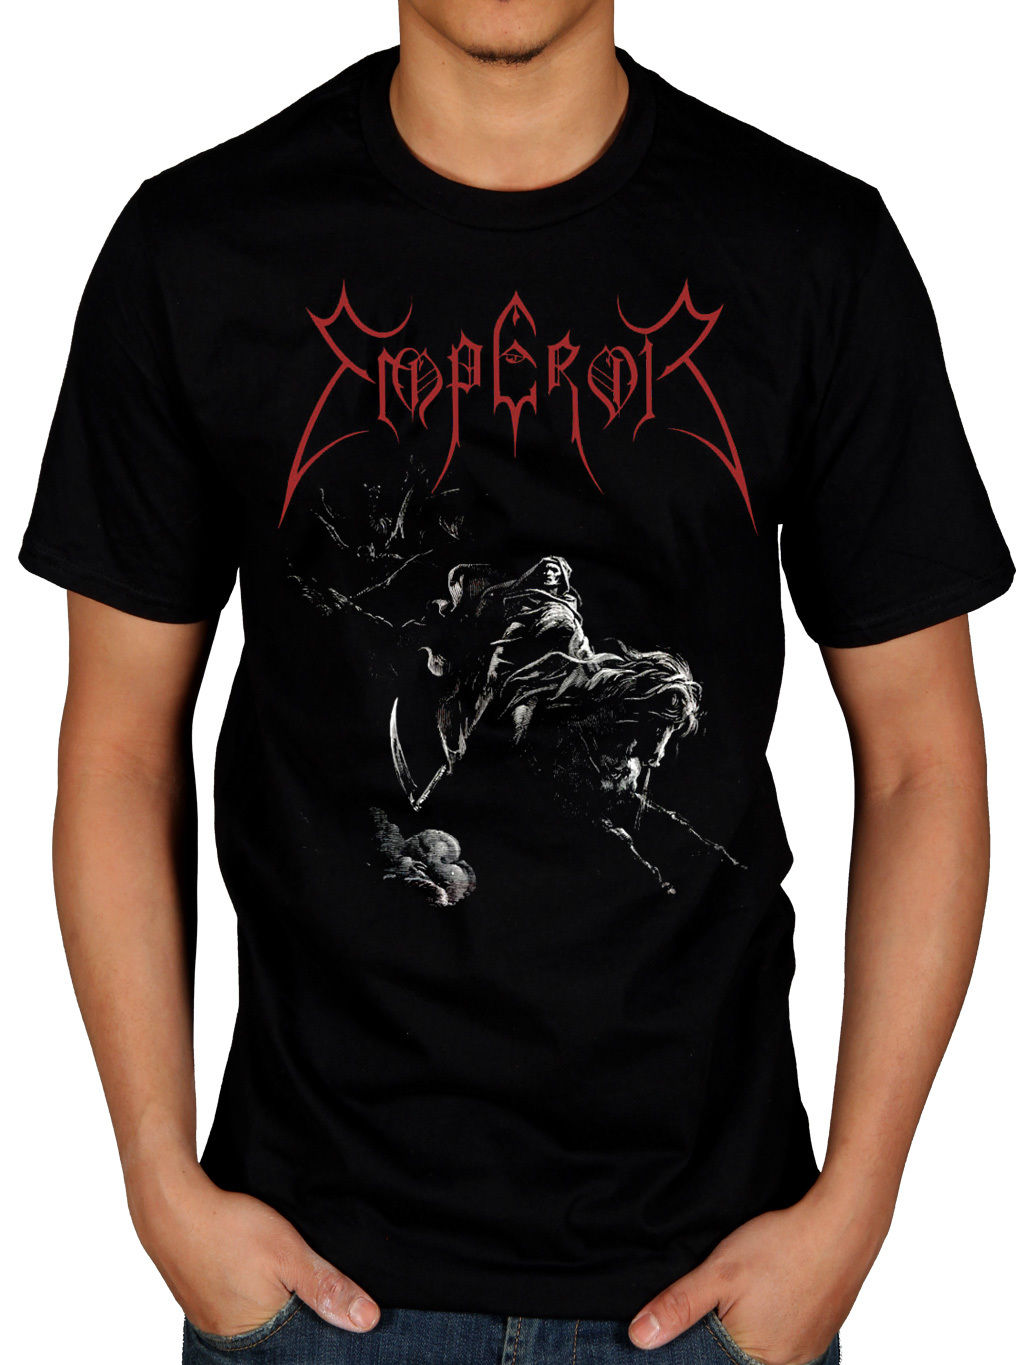 T black shirt rock - 2017 Men S Short Sleeve Emperor Rider 2005 T Shirt Rock Band Tour Merch Black Metal Design